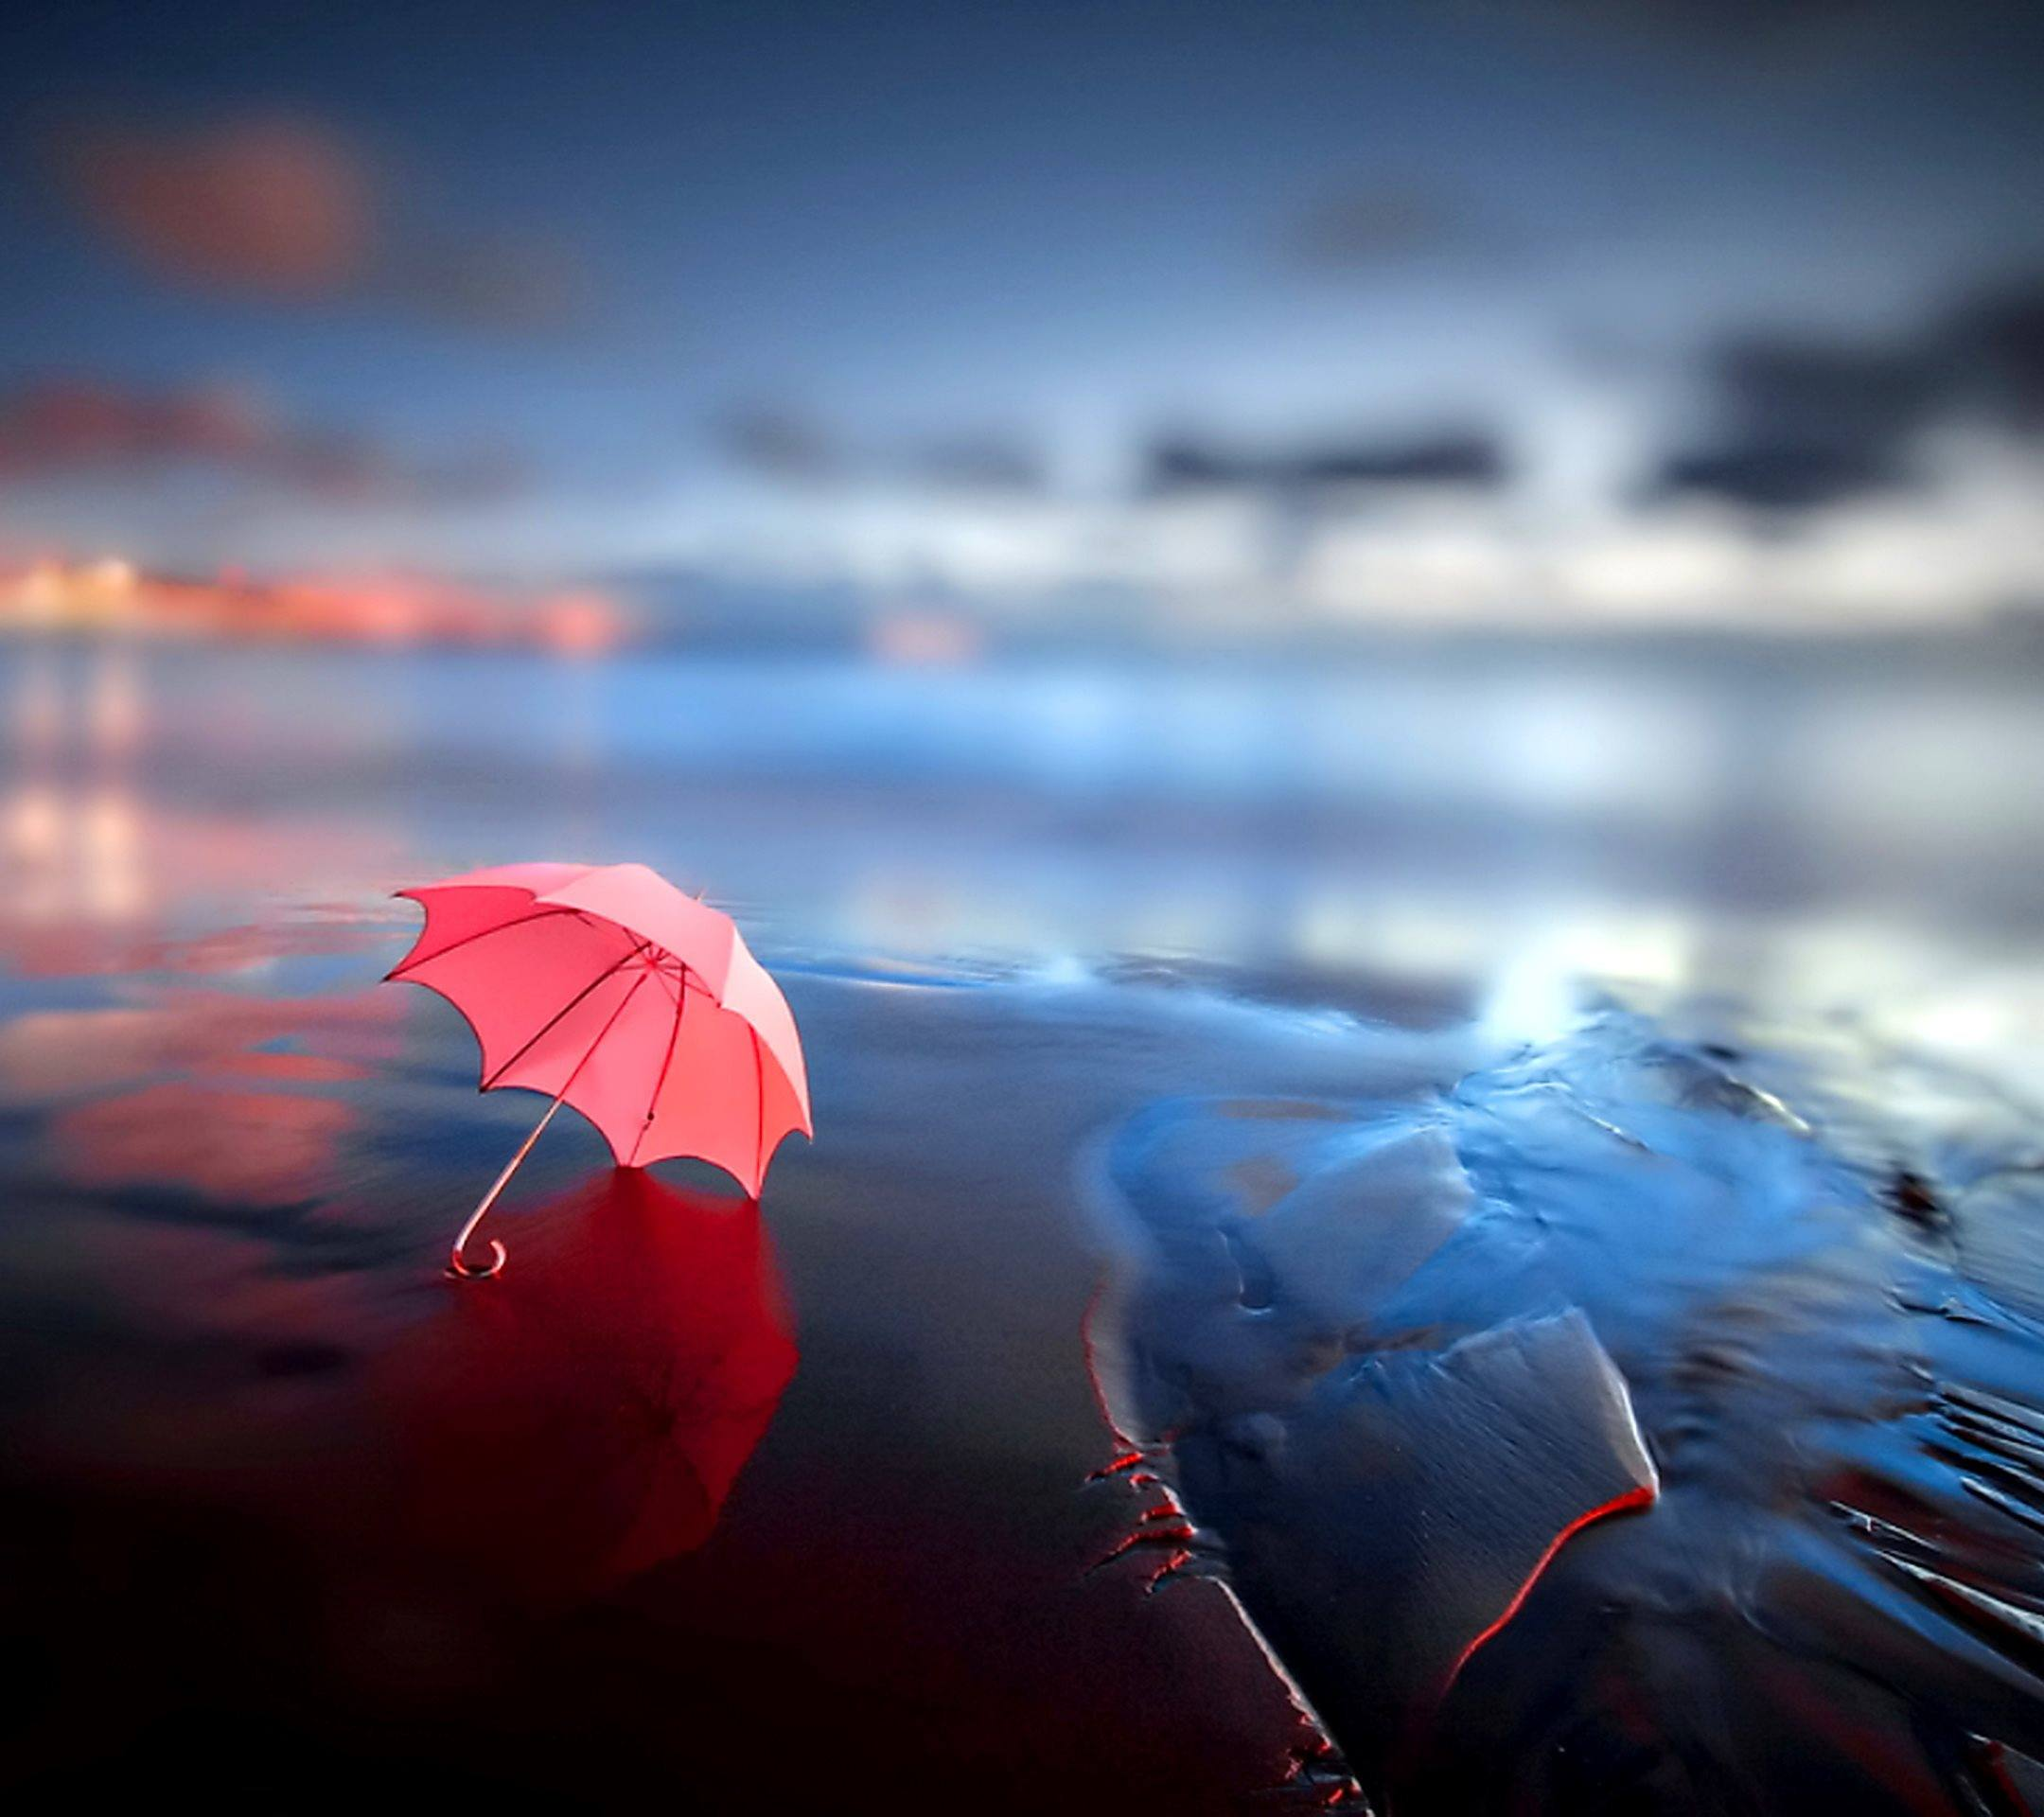 Umbrella wallpaper wallpapers high quality download free for Quality wallpaper for home